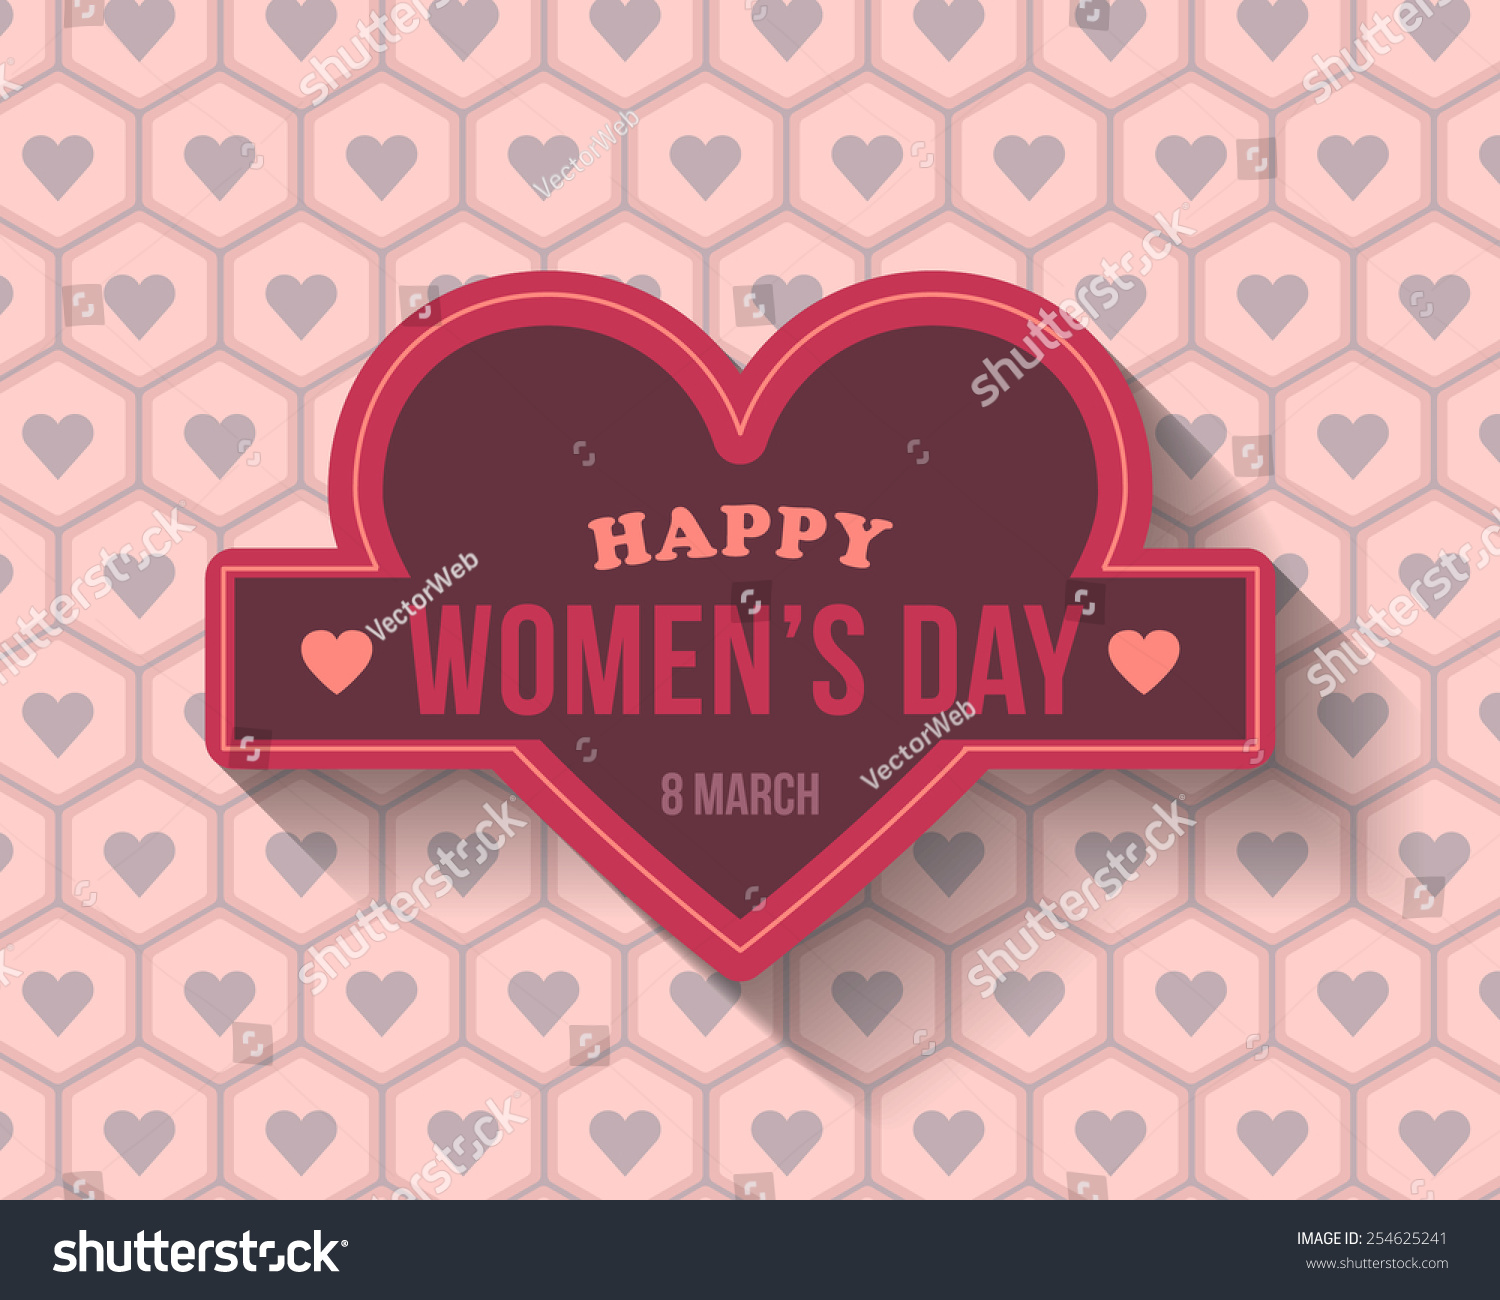 Hearts symbols happy womens day greeting stock vector 254625241 hearts symbols happy womens day greeting card announcement background biocorpaavc